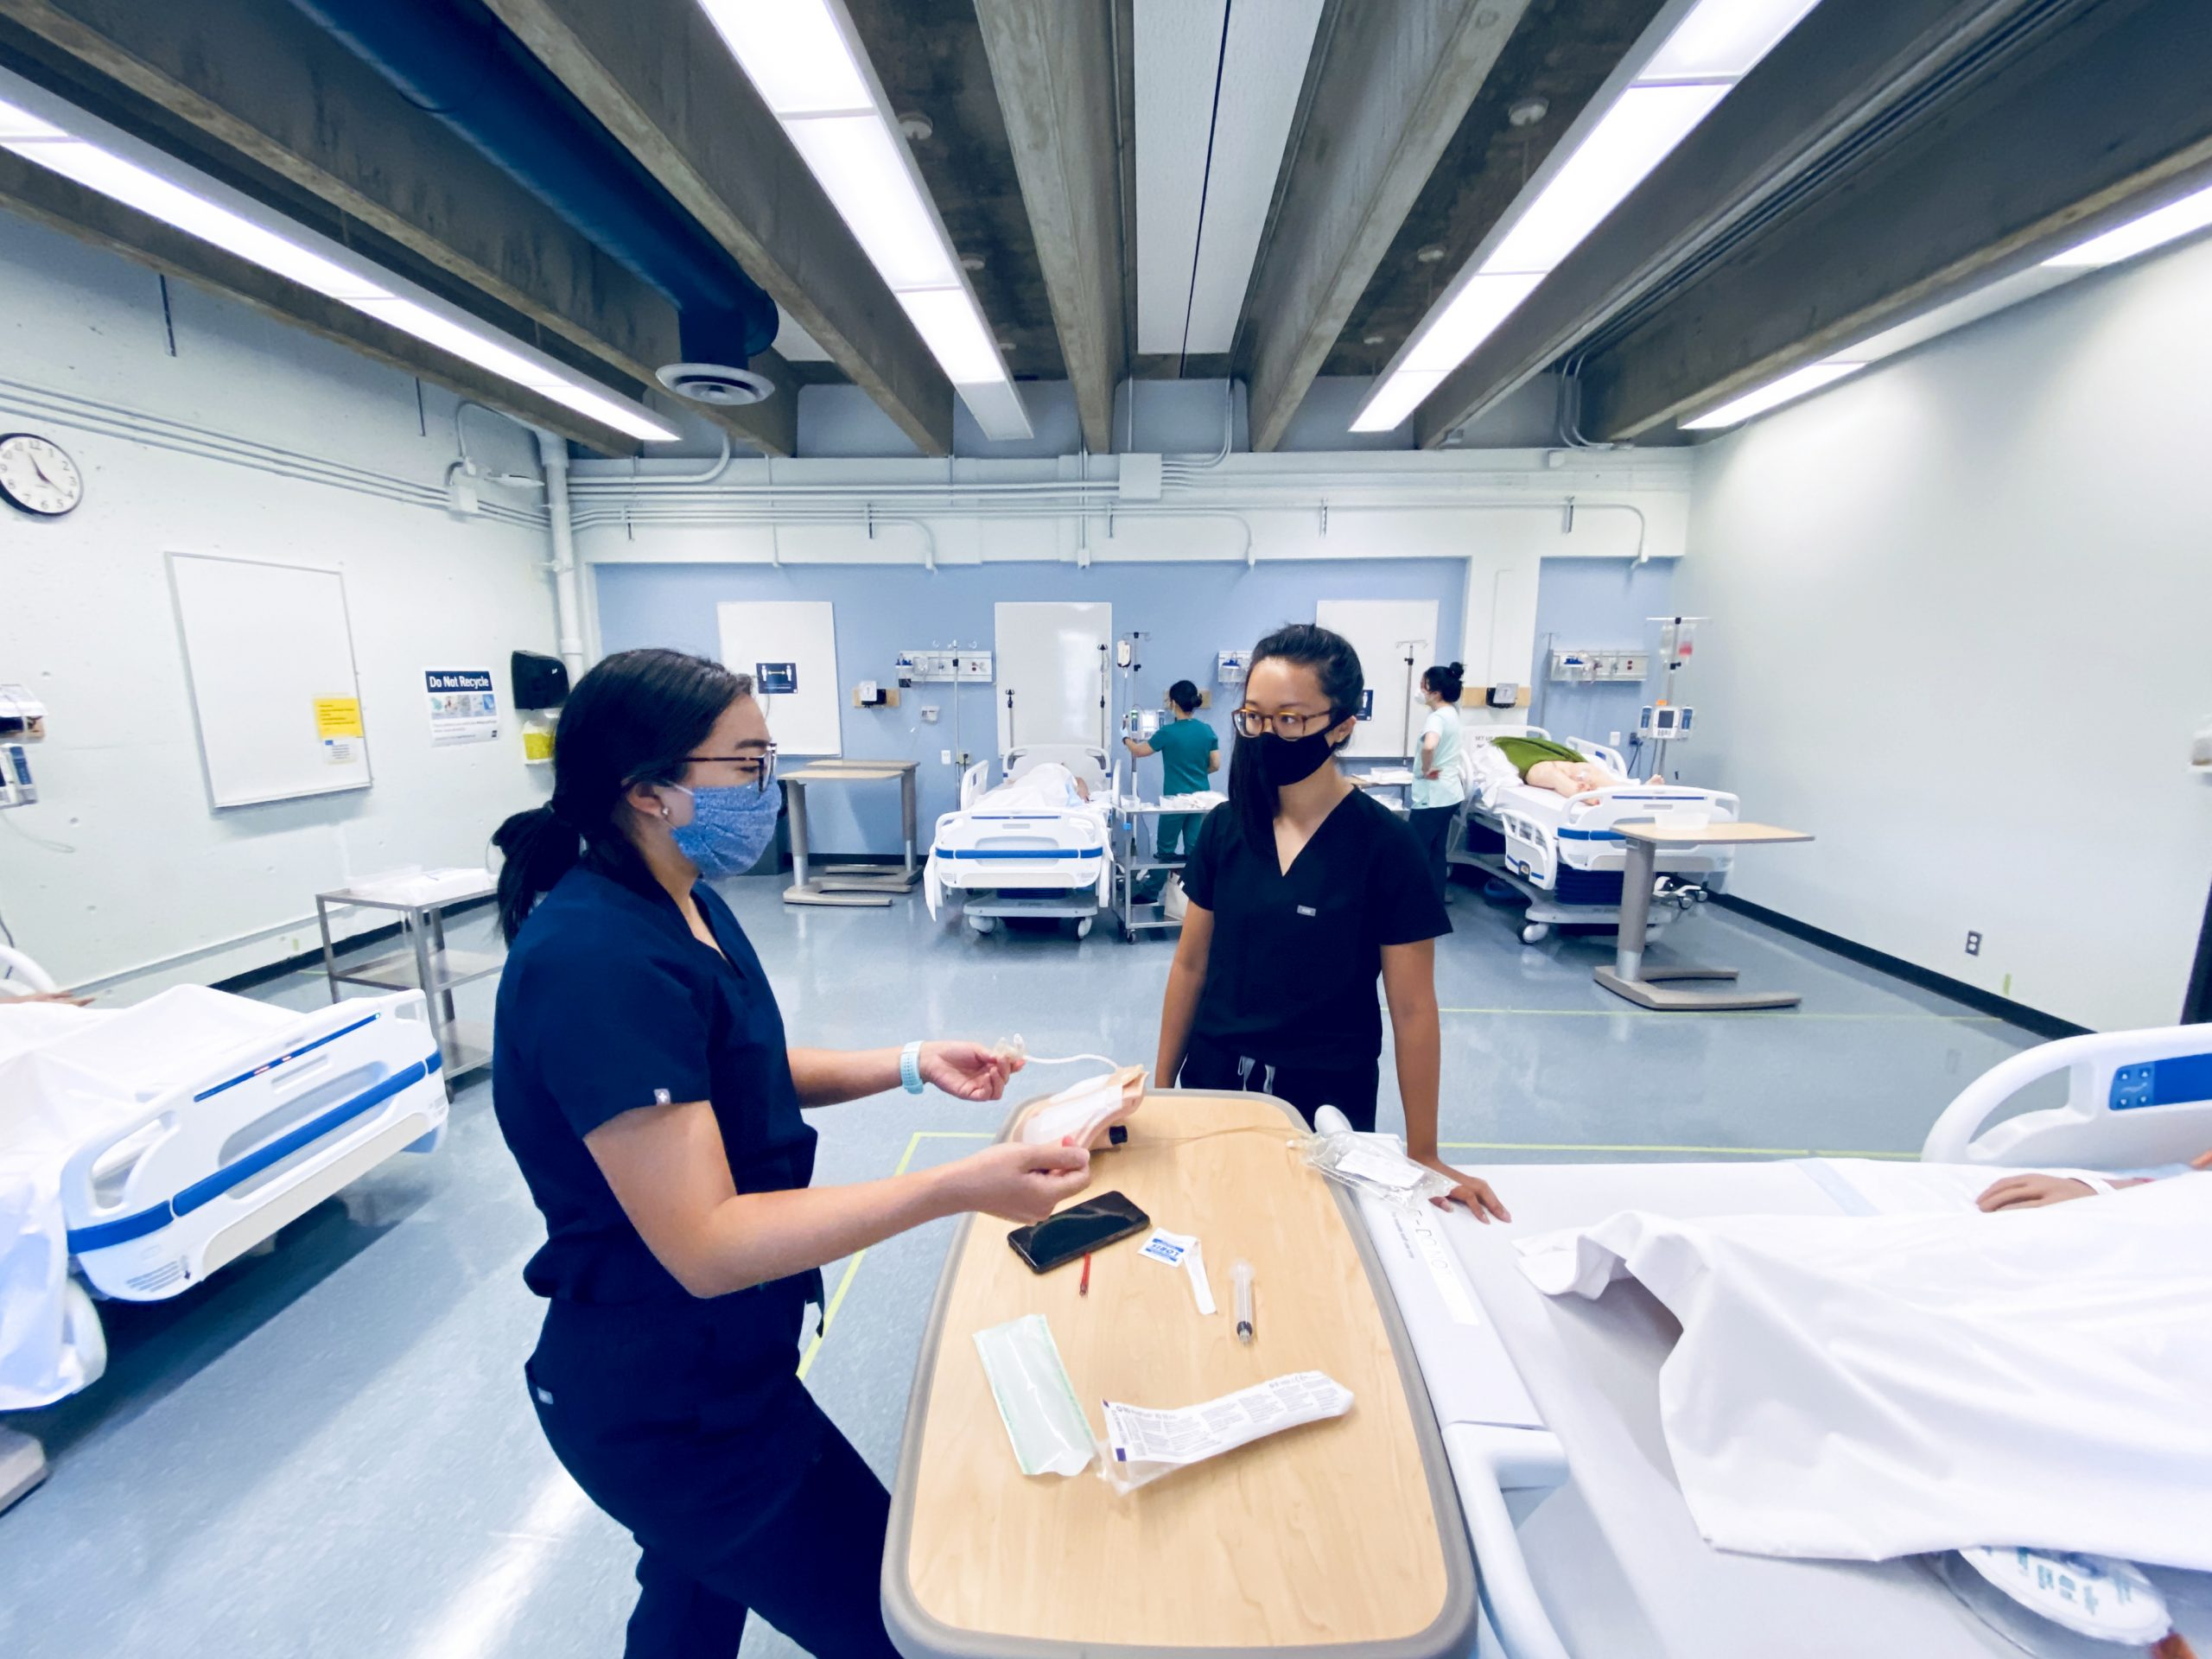 Clinical experience is valuable for BCIT Nursing students